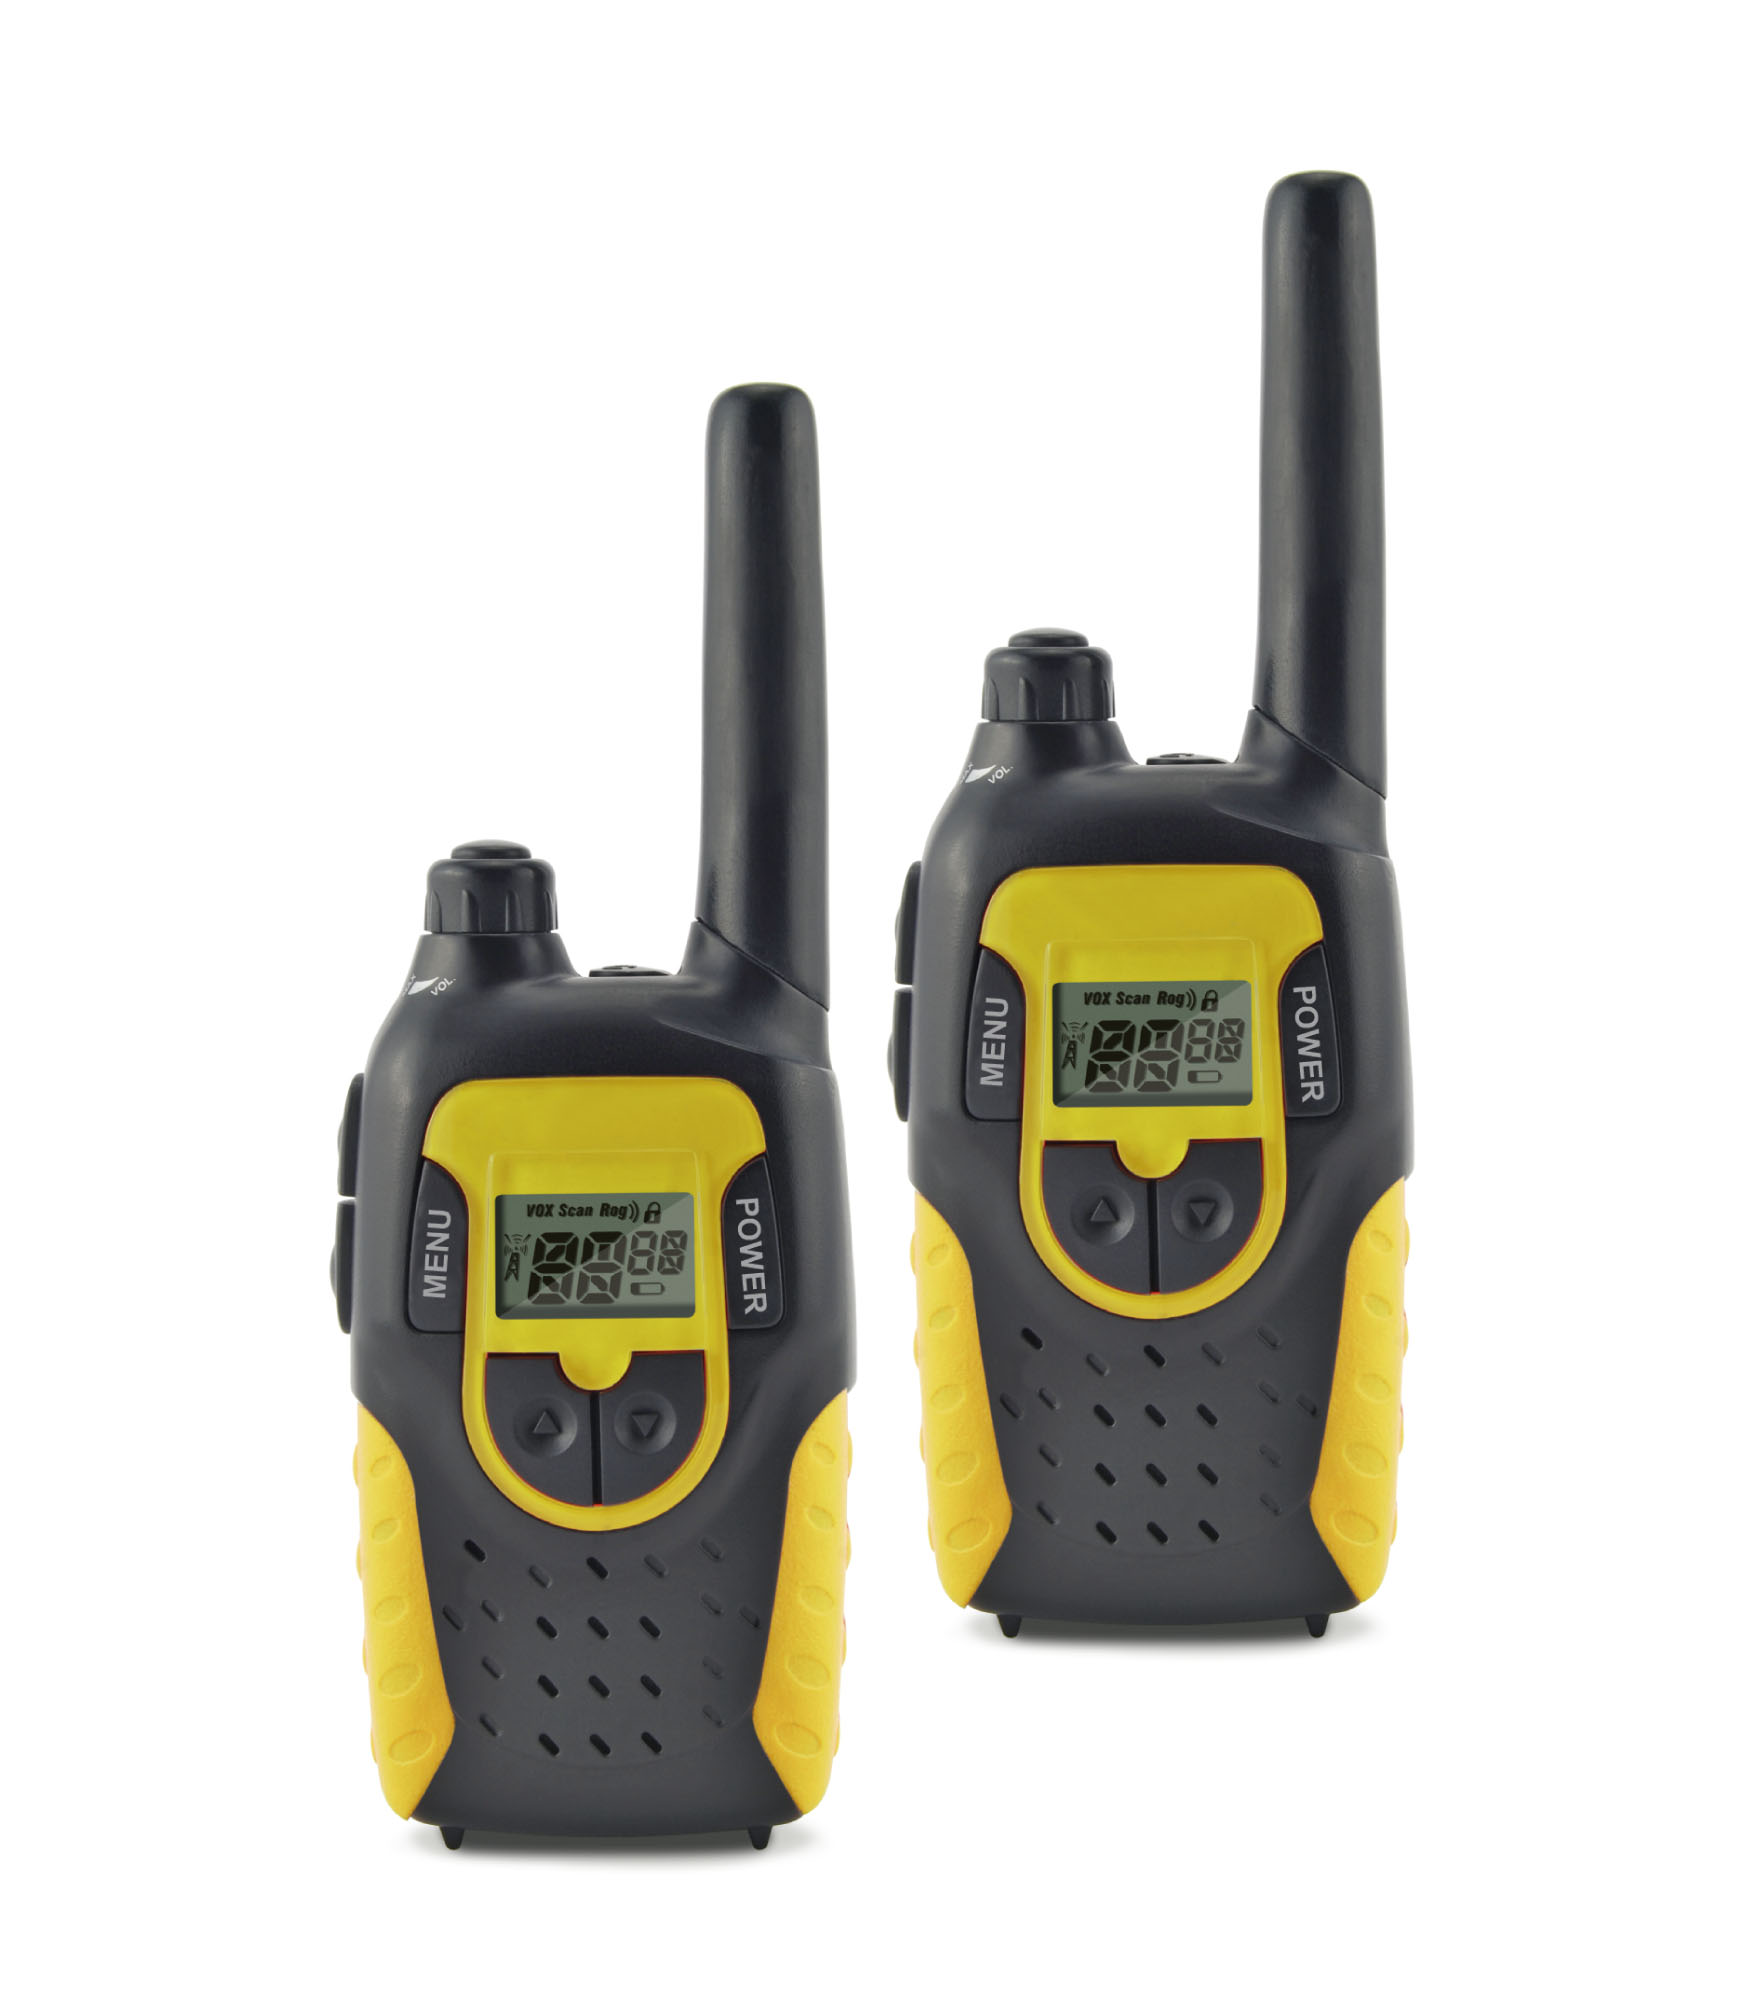 handheld radio long distance radio <strong>communication</strong>